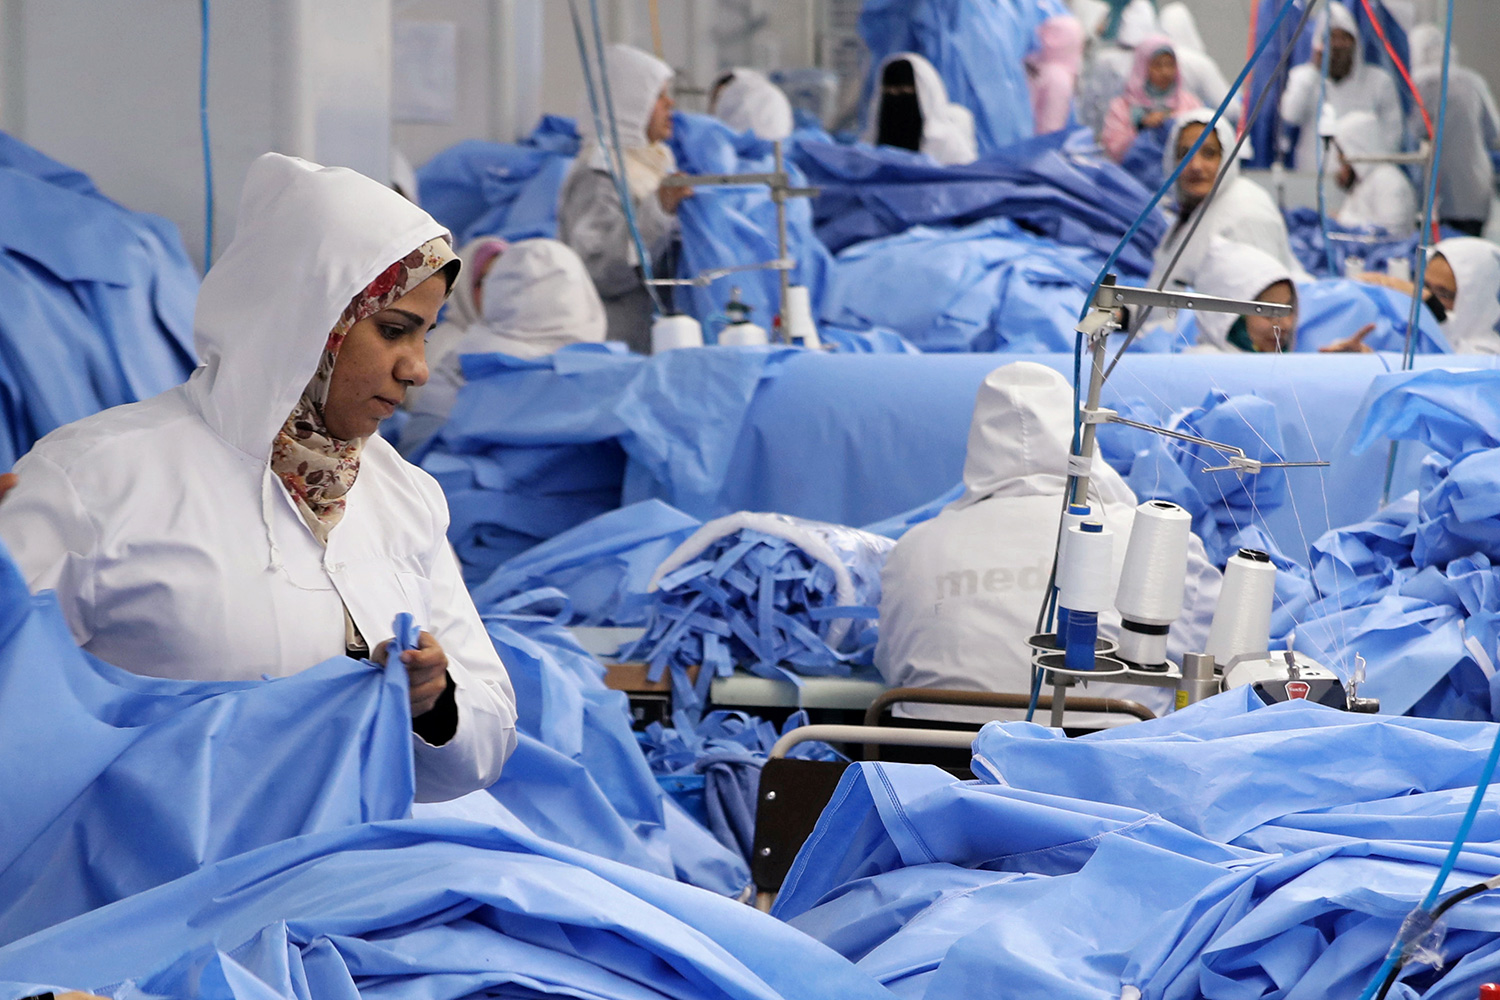 Picture shows blue—lots of blue. The workers are in white protective clothing in the factory assembly area, working among stacks of blue fabric.